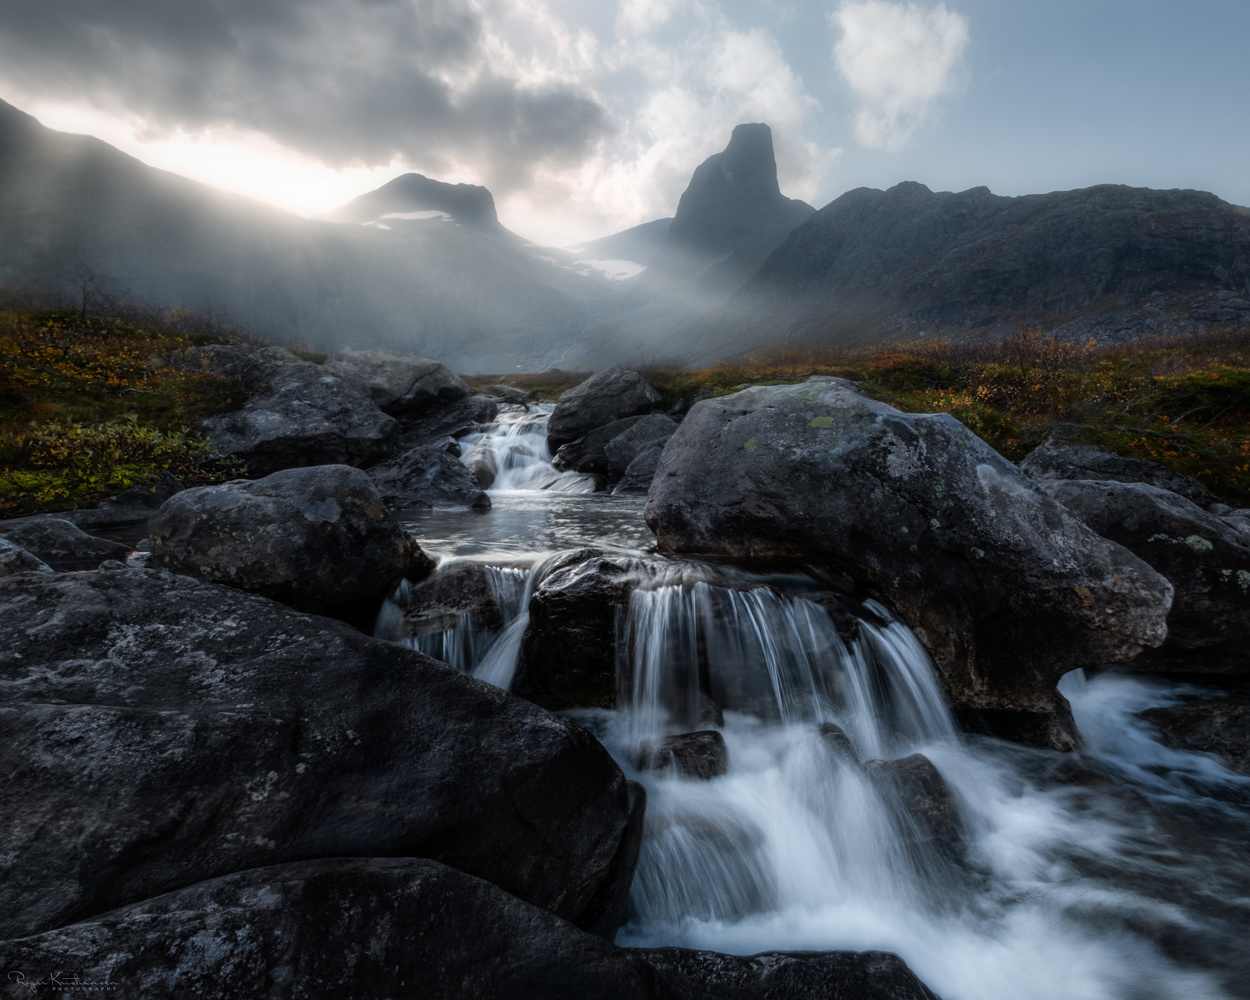 Hazy morning in the Norwegian mountains by Roger Kristiansen